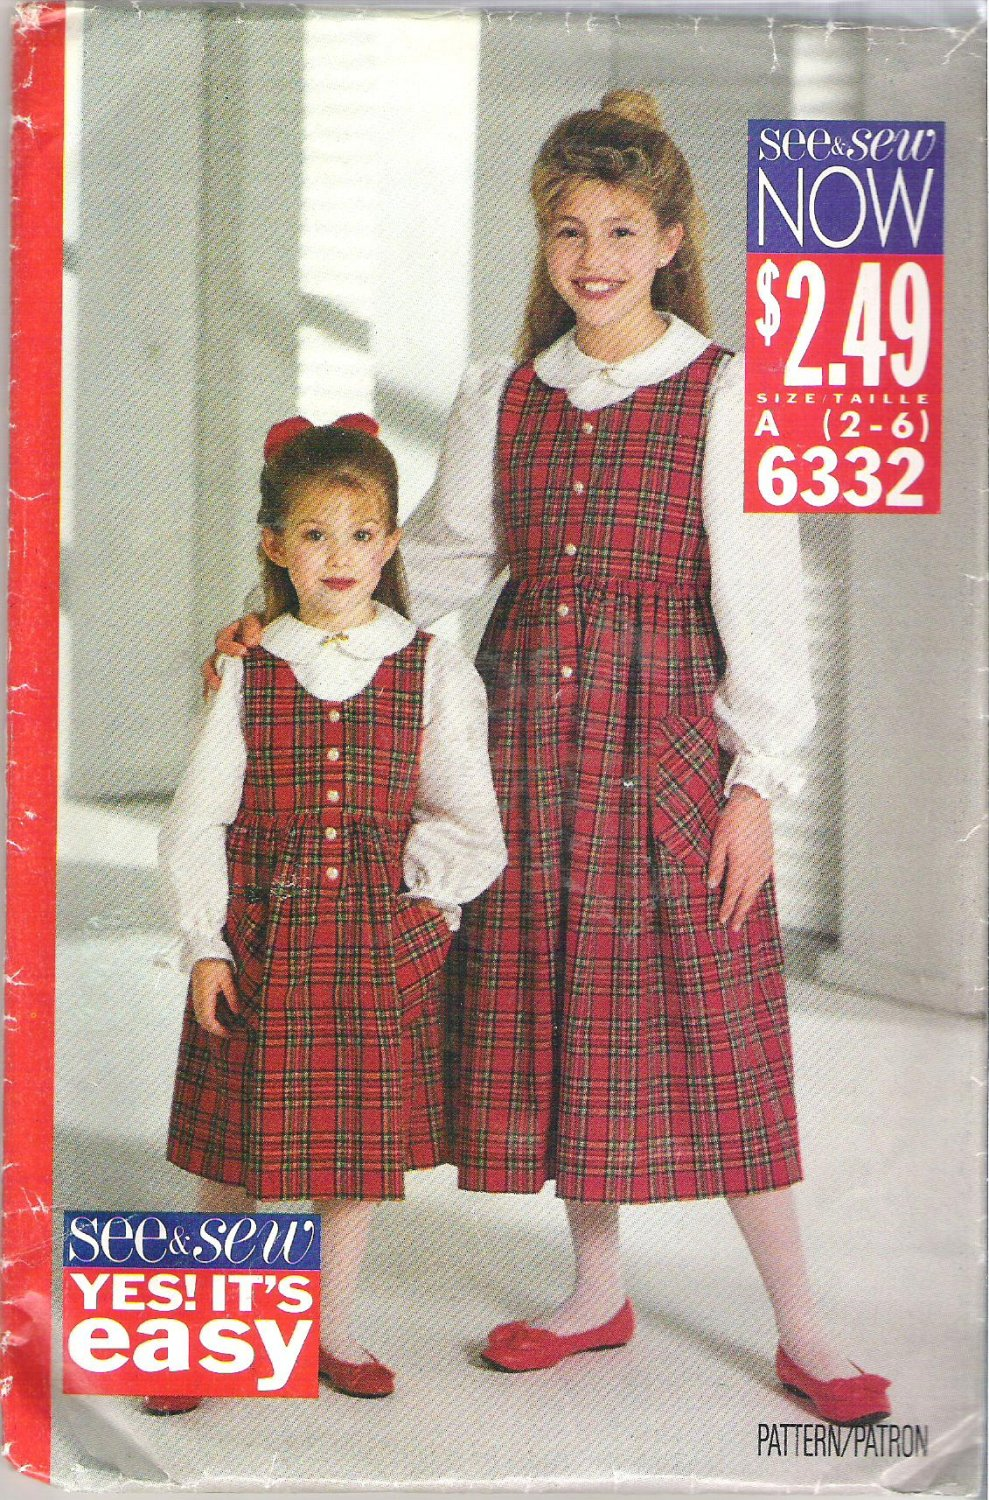 Butterick 6332 (1992) Pattern Childs Girls Jumper Dress Top blouse Shirt Size 2-6 Uncut